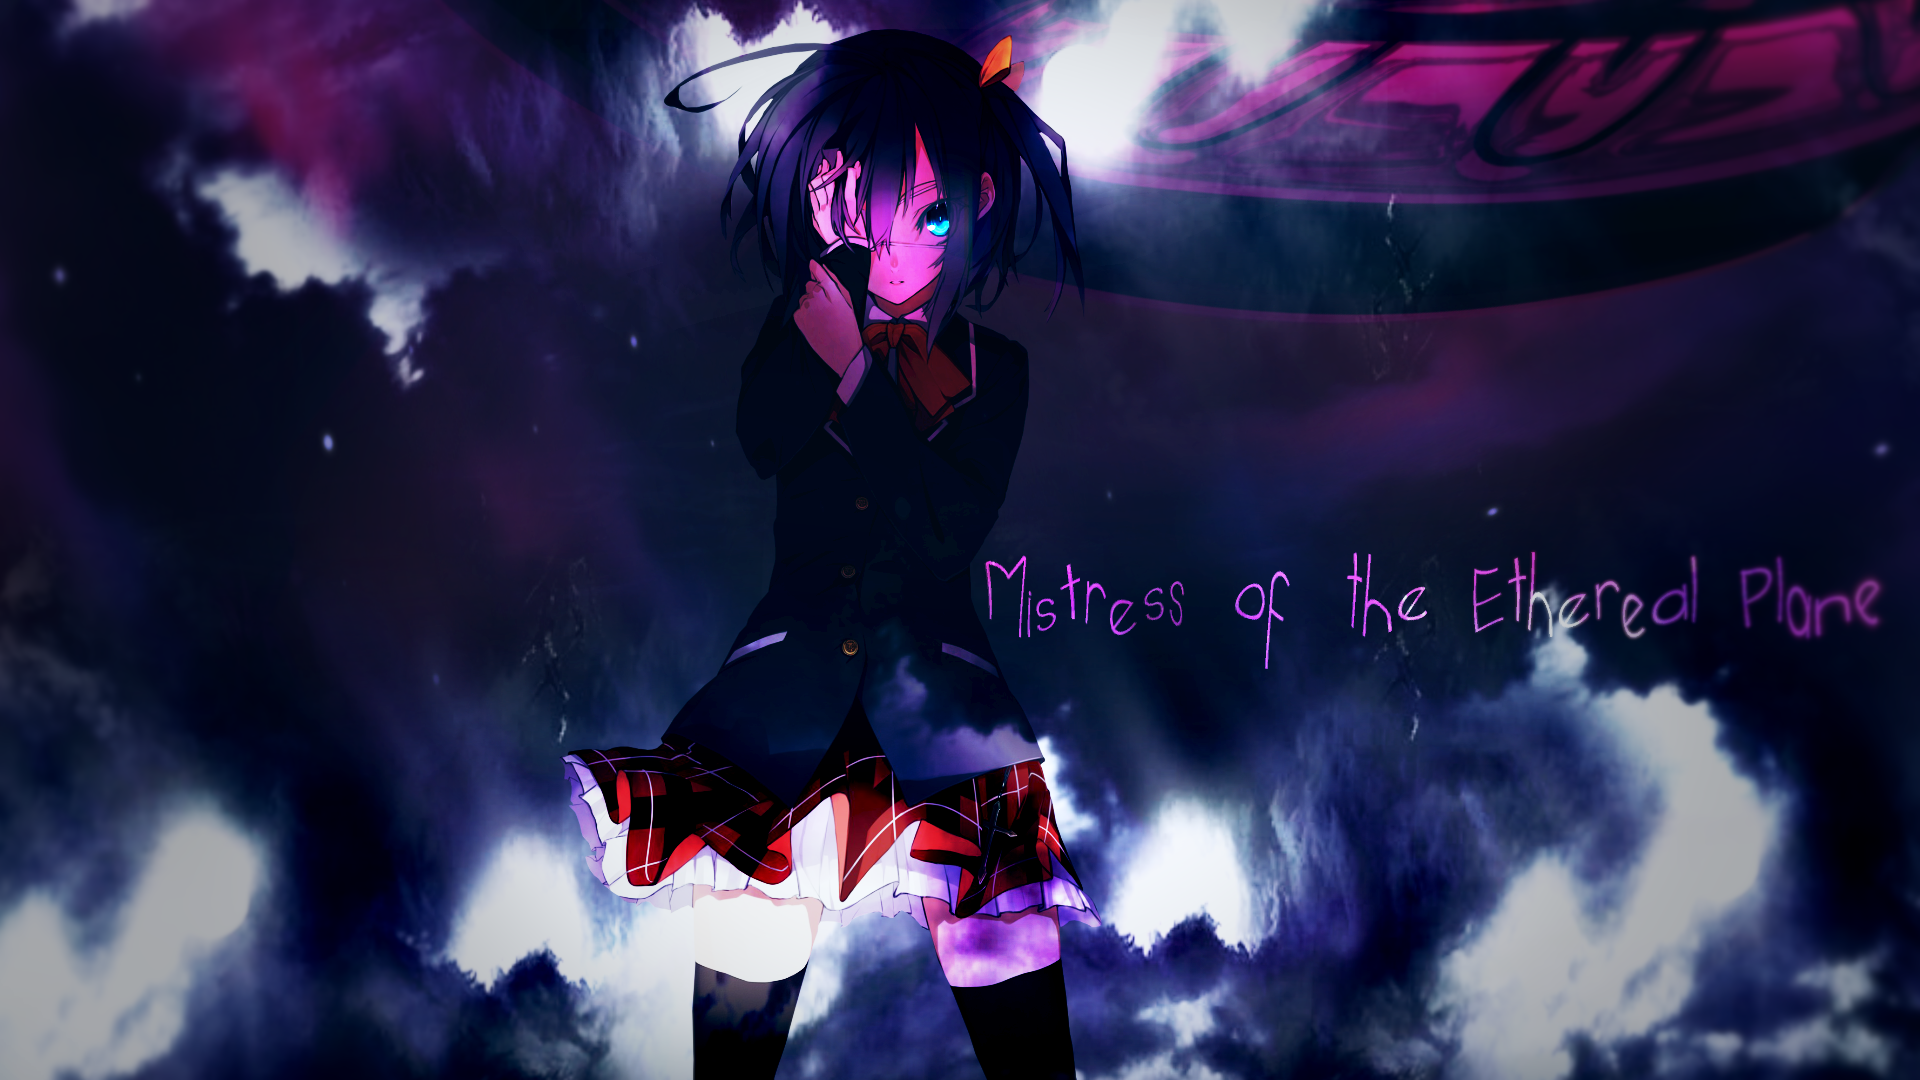 Love Chunibyo Other Delusions Computer Wallpapers Desktop Backgrounds 1920x1080 Id 655094 Anime